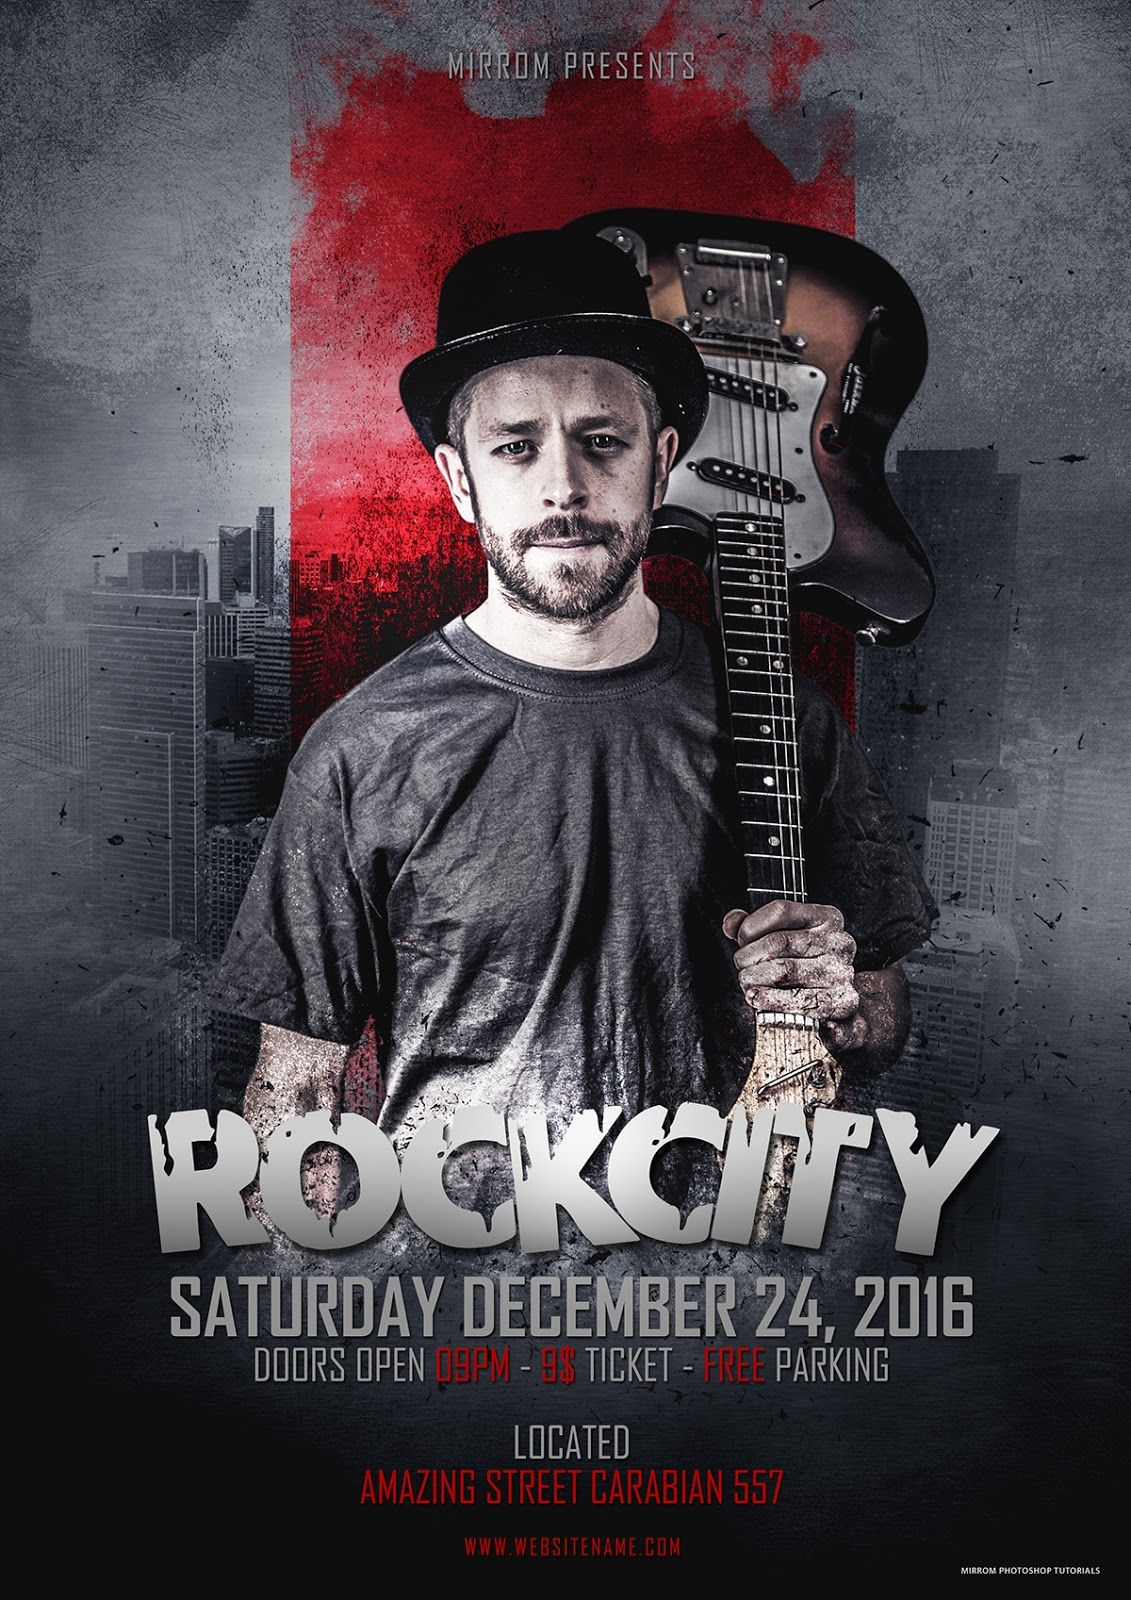 This time ill show it to you to make a poster of rock music concert from scratch using only photoshop